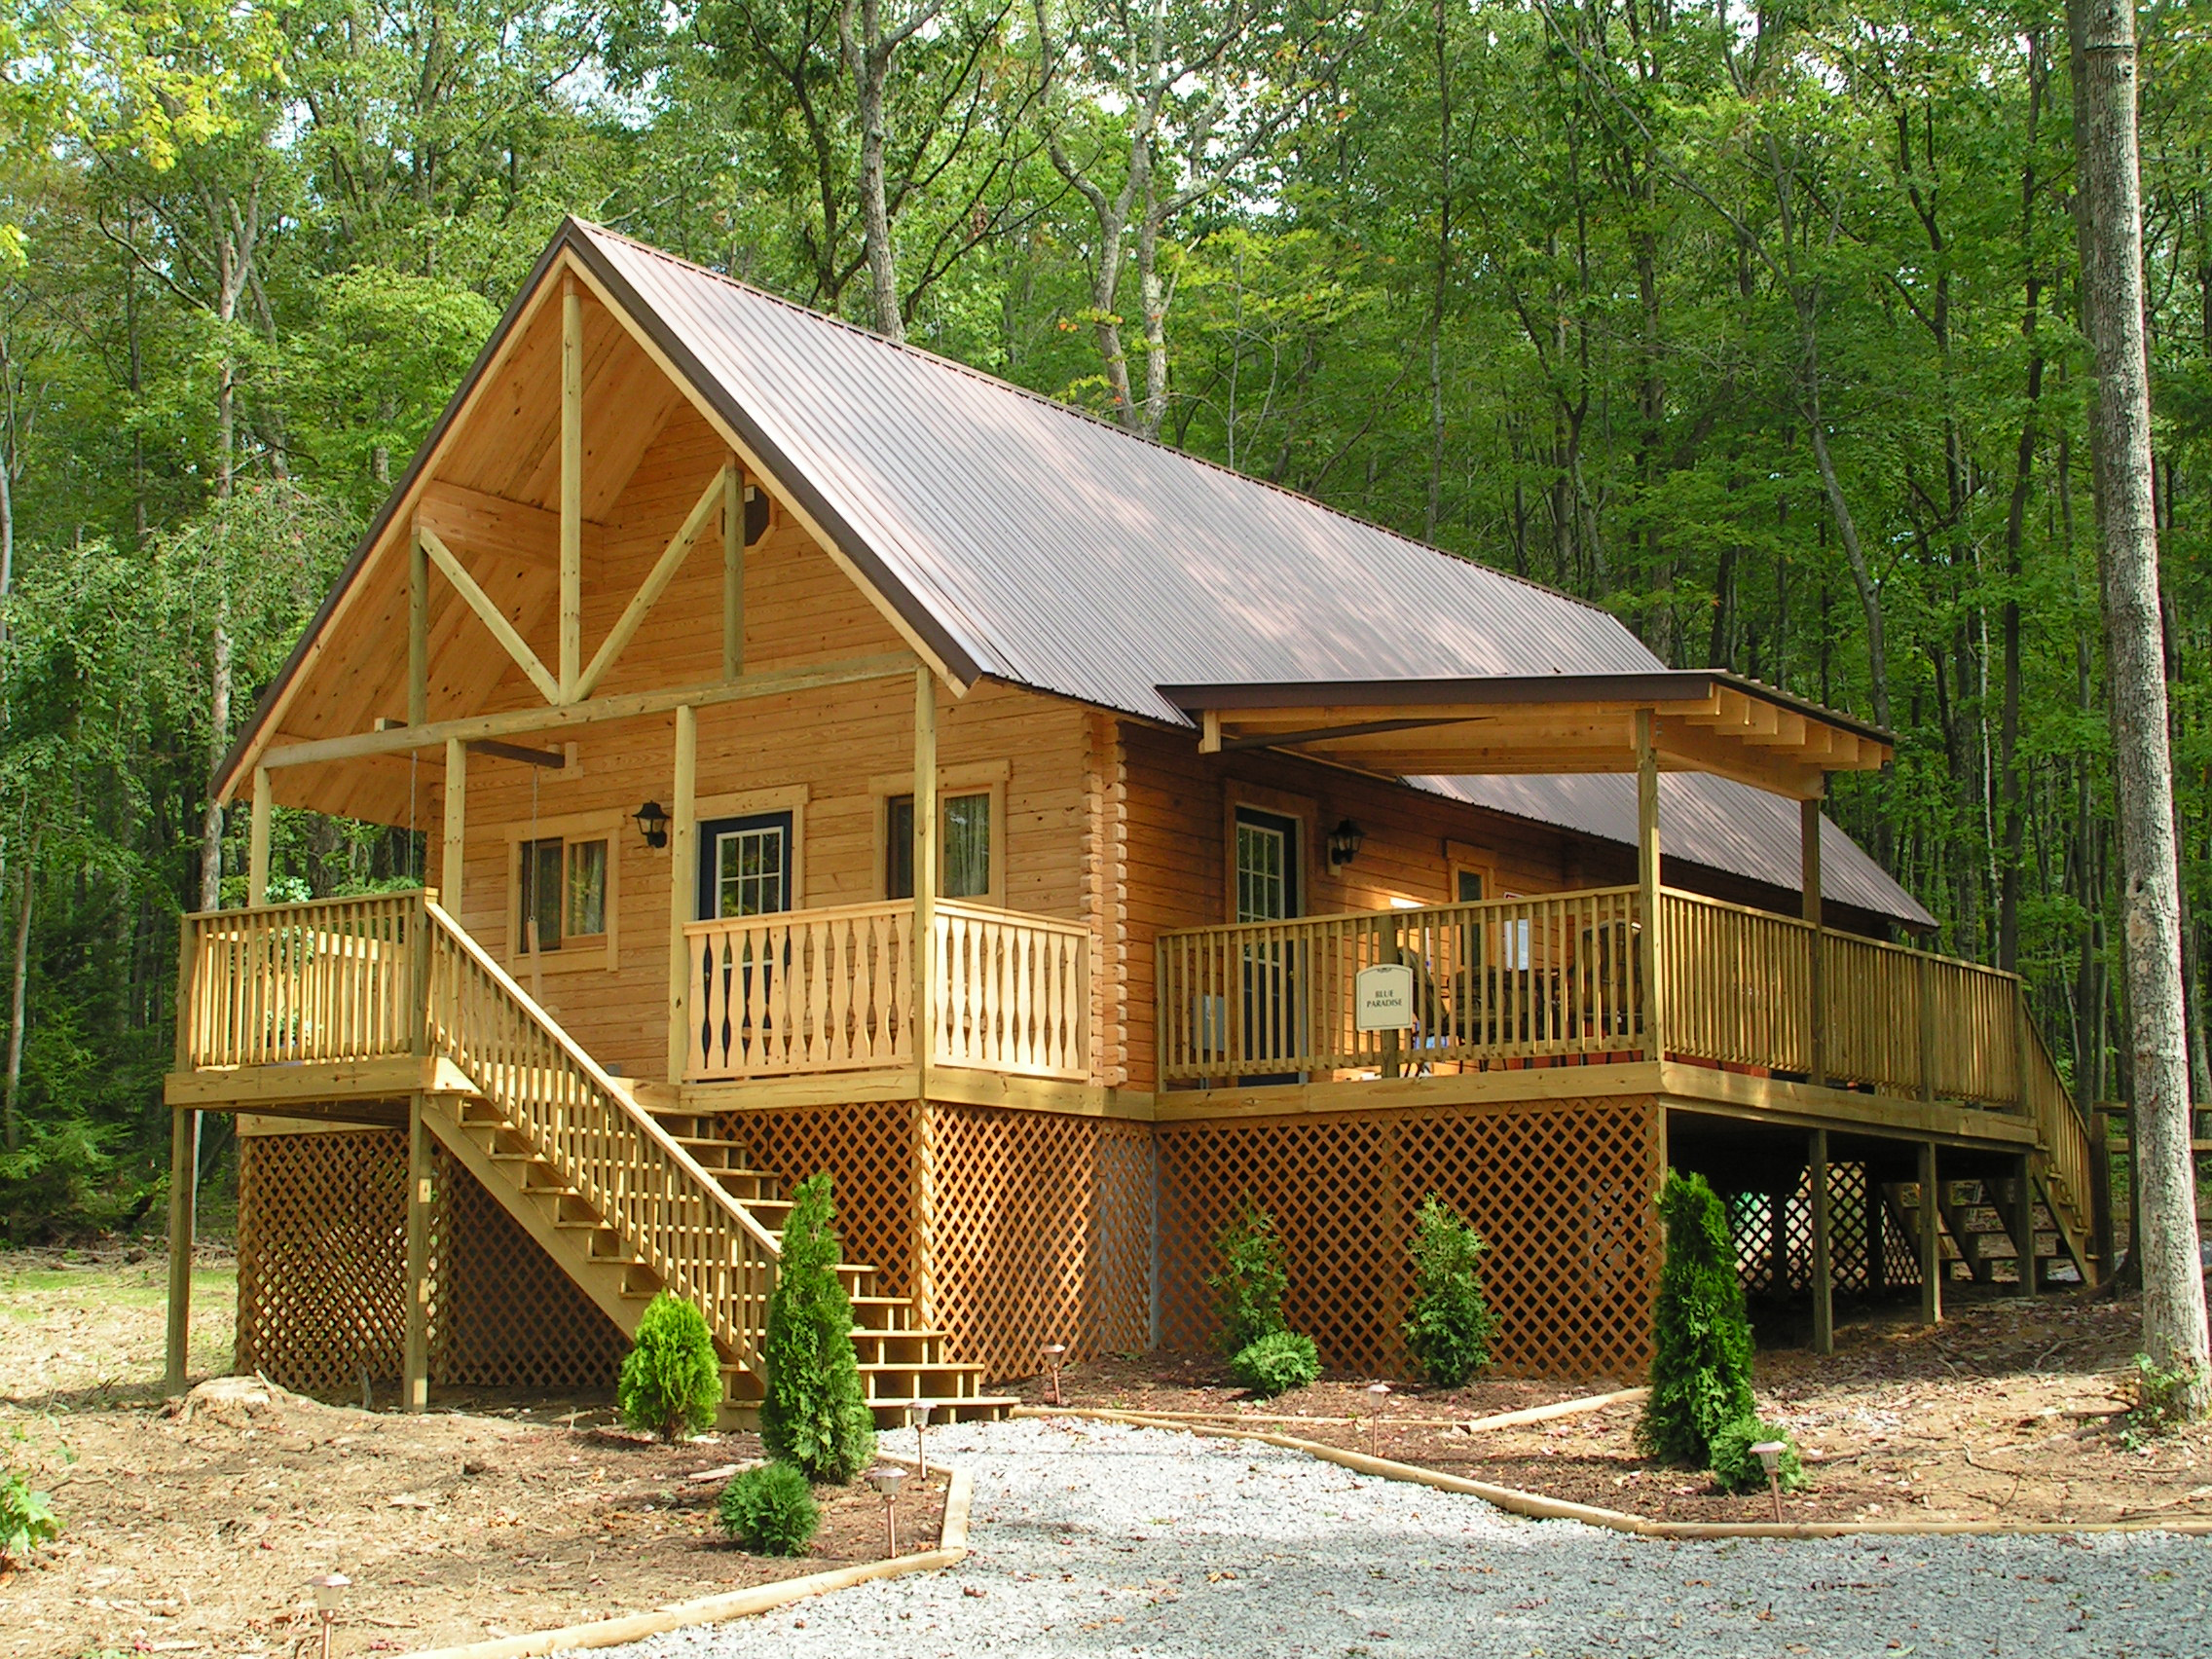 rental bhc hot with ba houses owner beach properties bear property details cabin secluded asp cabins tub by homes go hug wv vacation br in